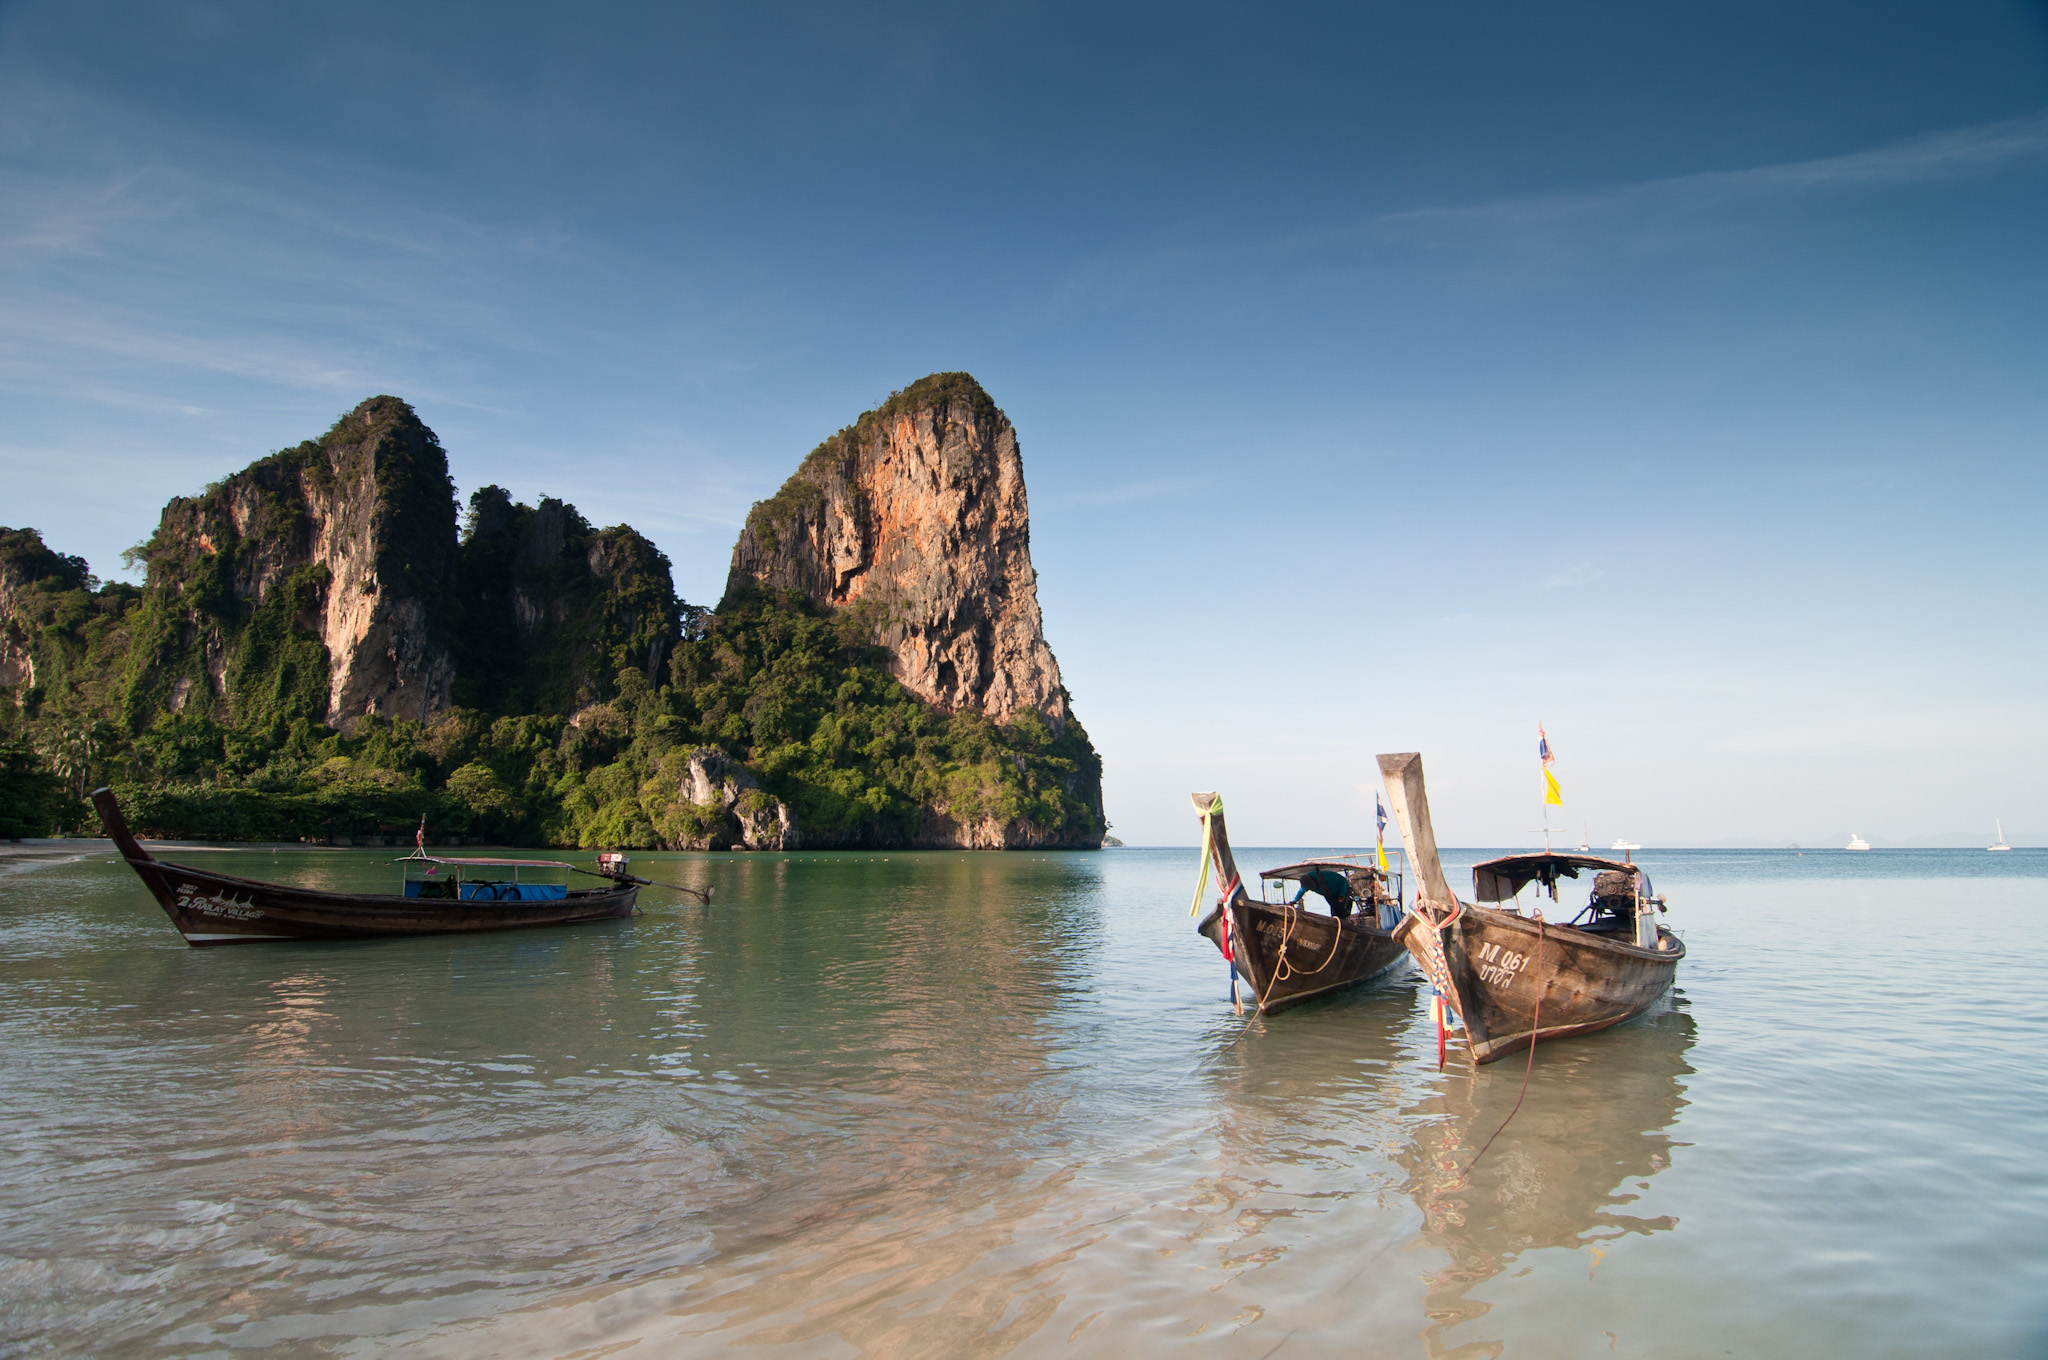 The early morning sun bathes the karst (rock formation) behind a long-tail boat at Railay West Beach in Krabi, Thailand.